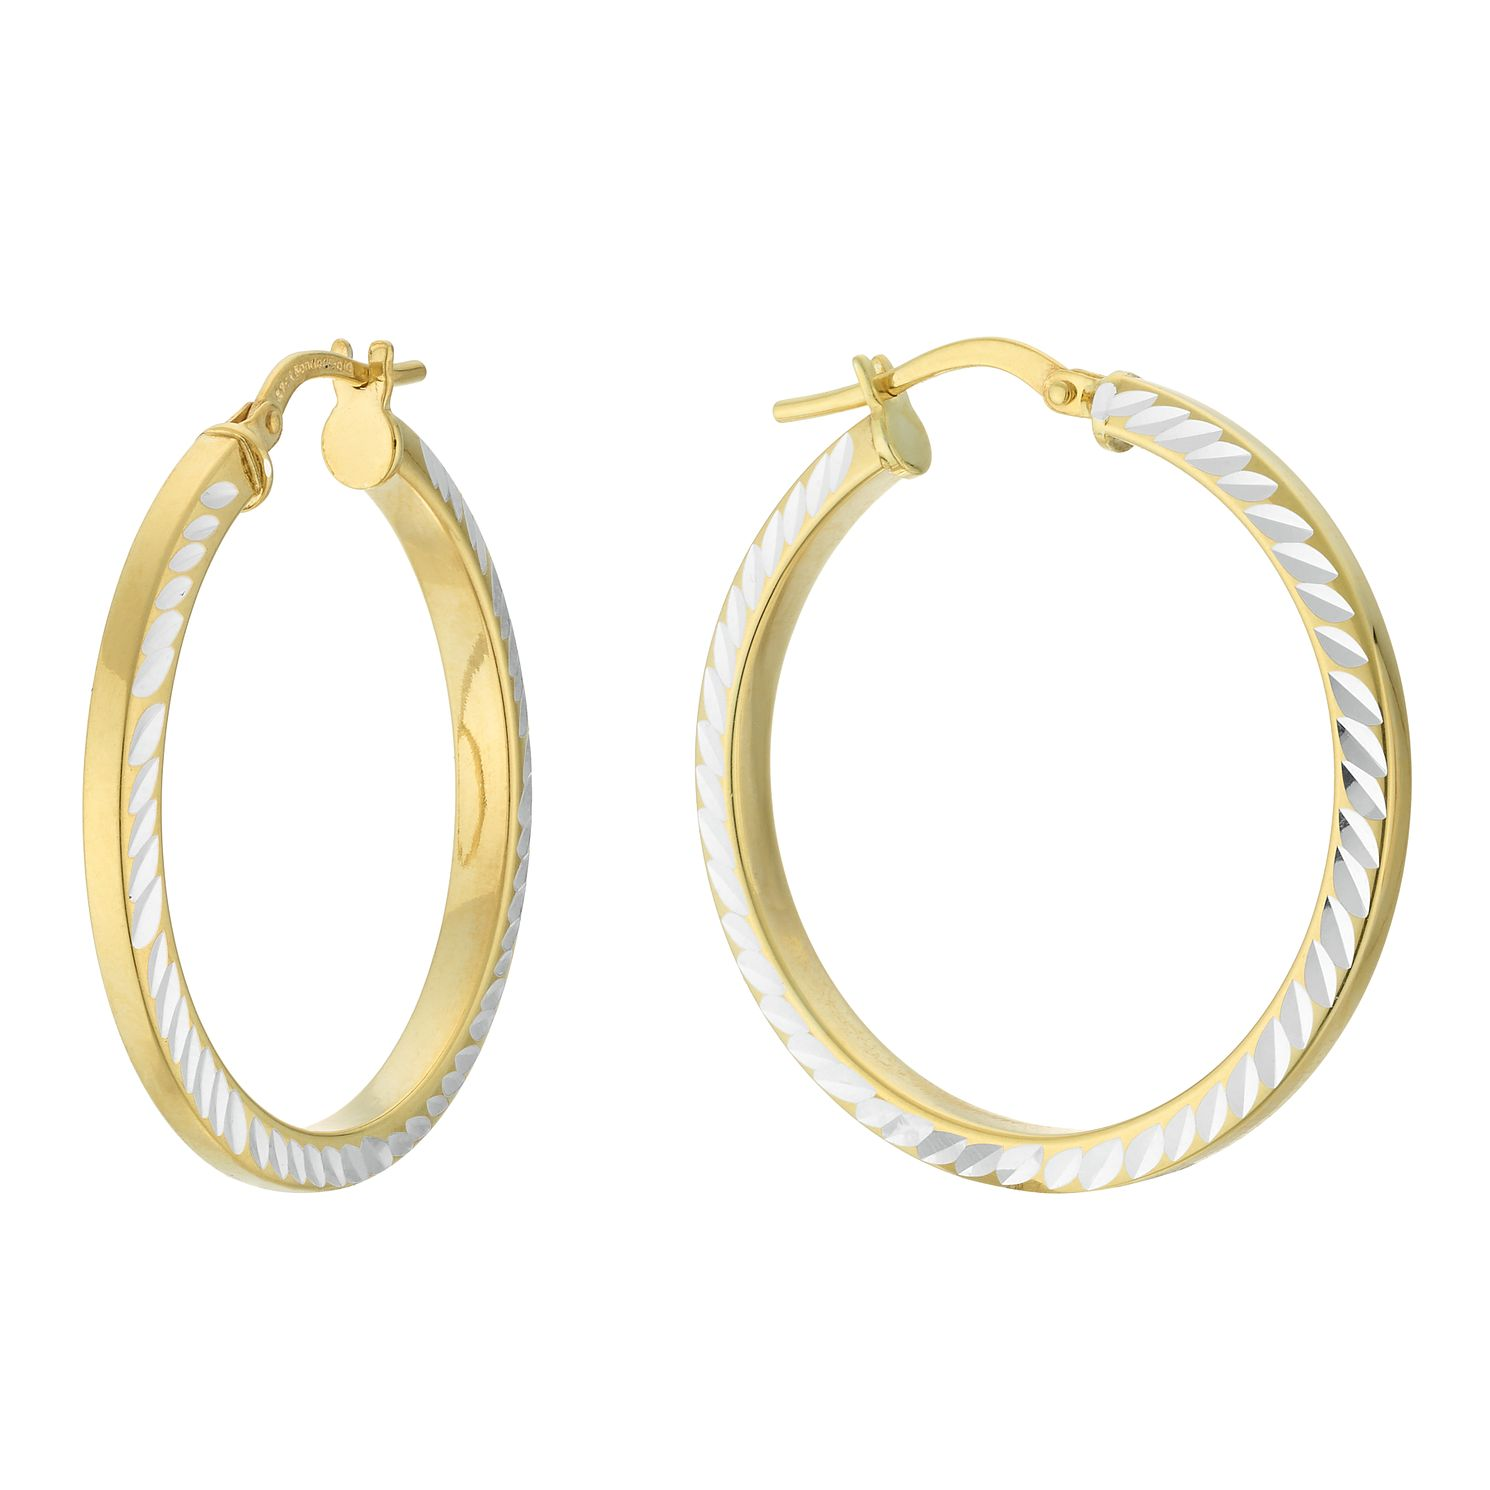 Together Silver & 9ct Bonded Gold Dia/Cut 25mm Hoop Earrings - Product number 4056345